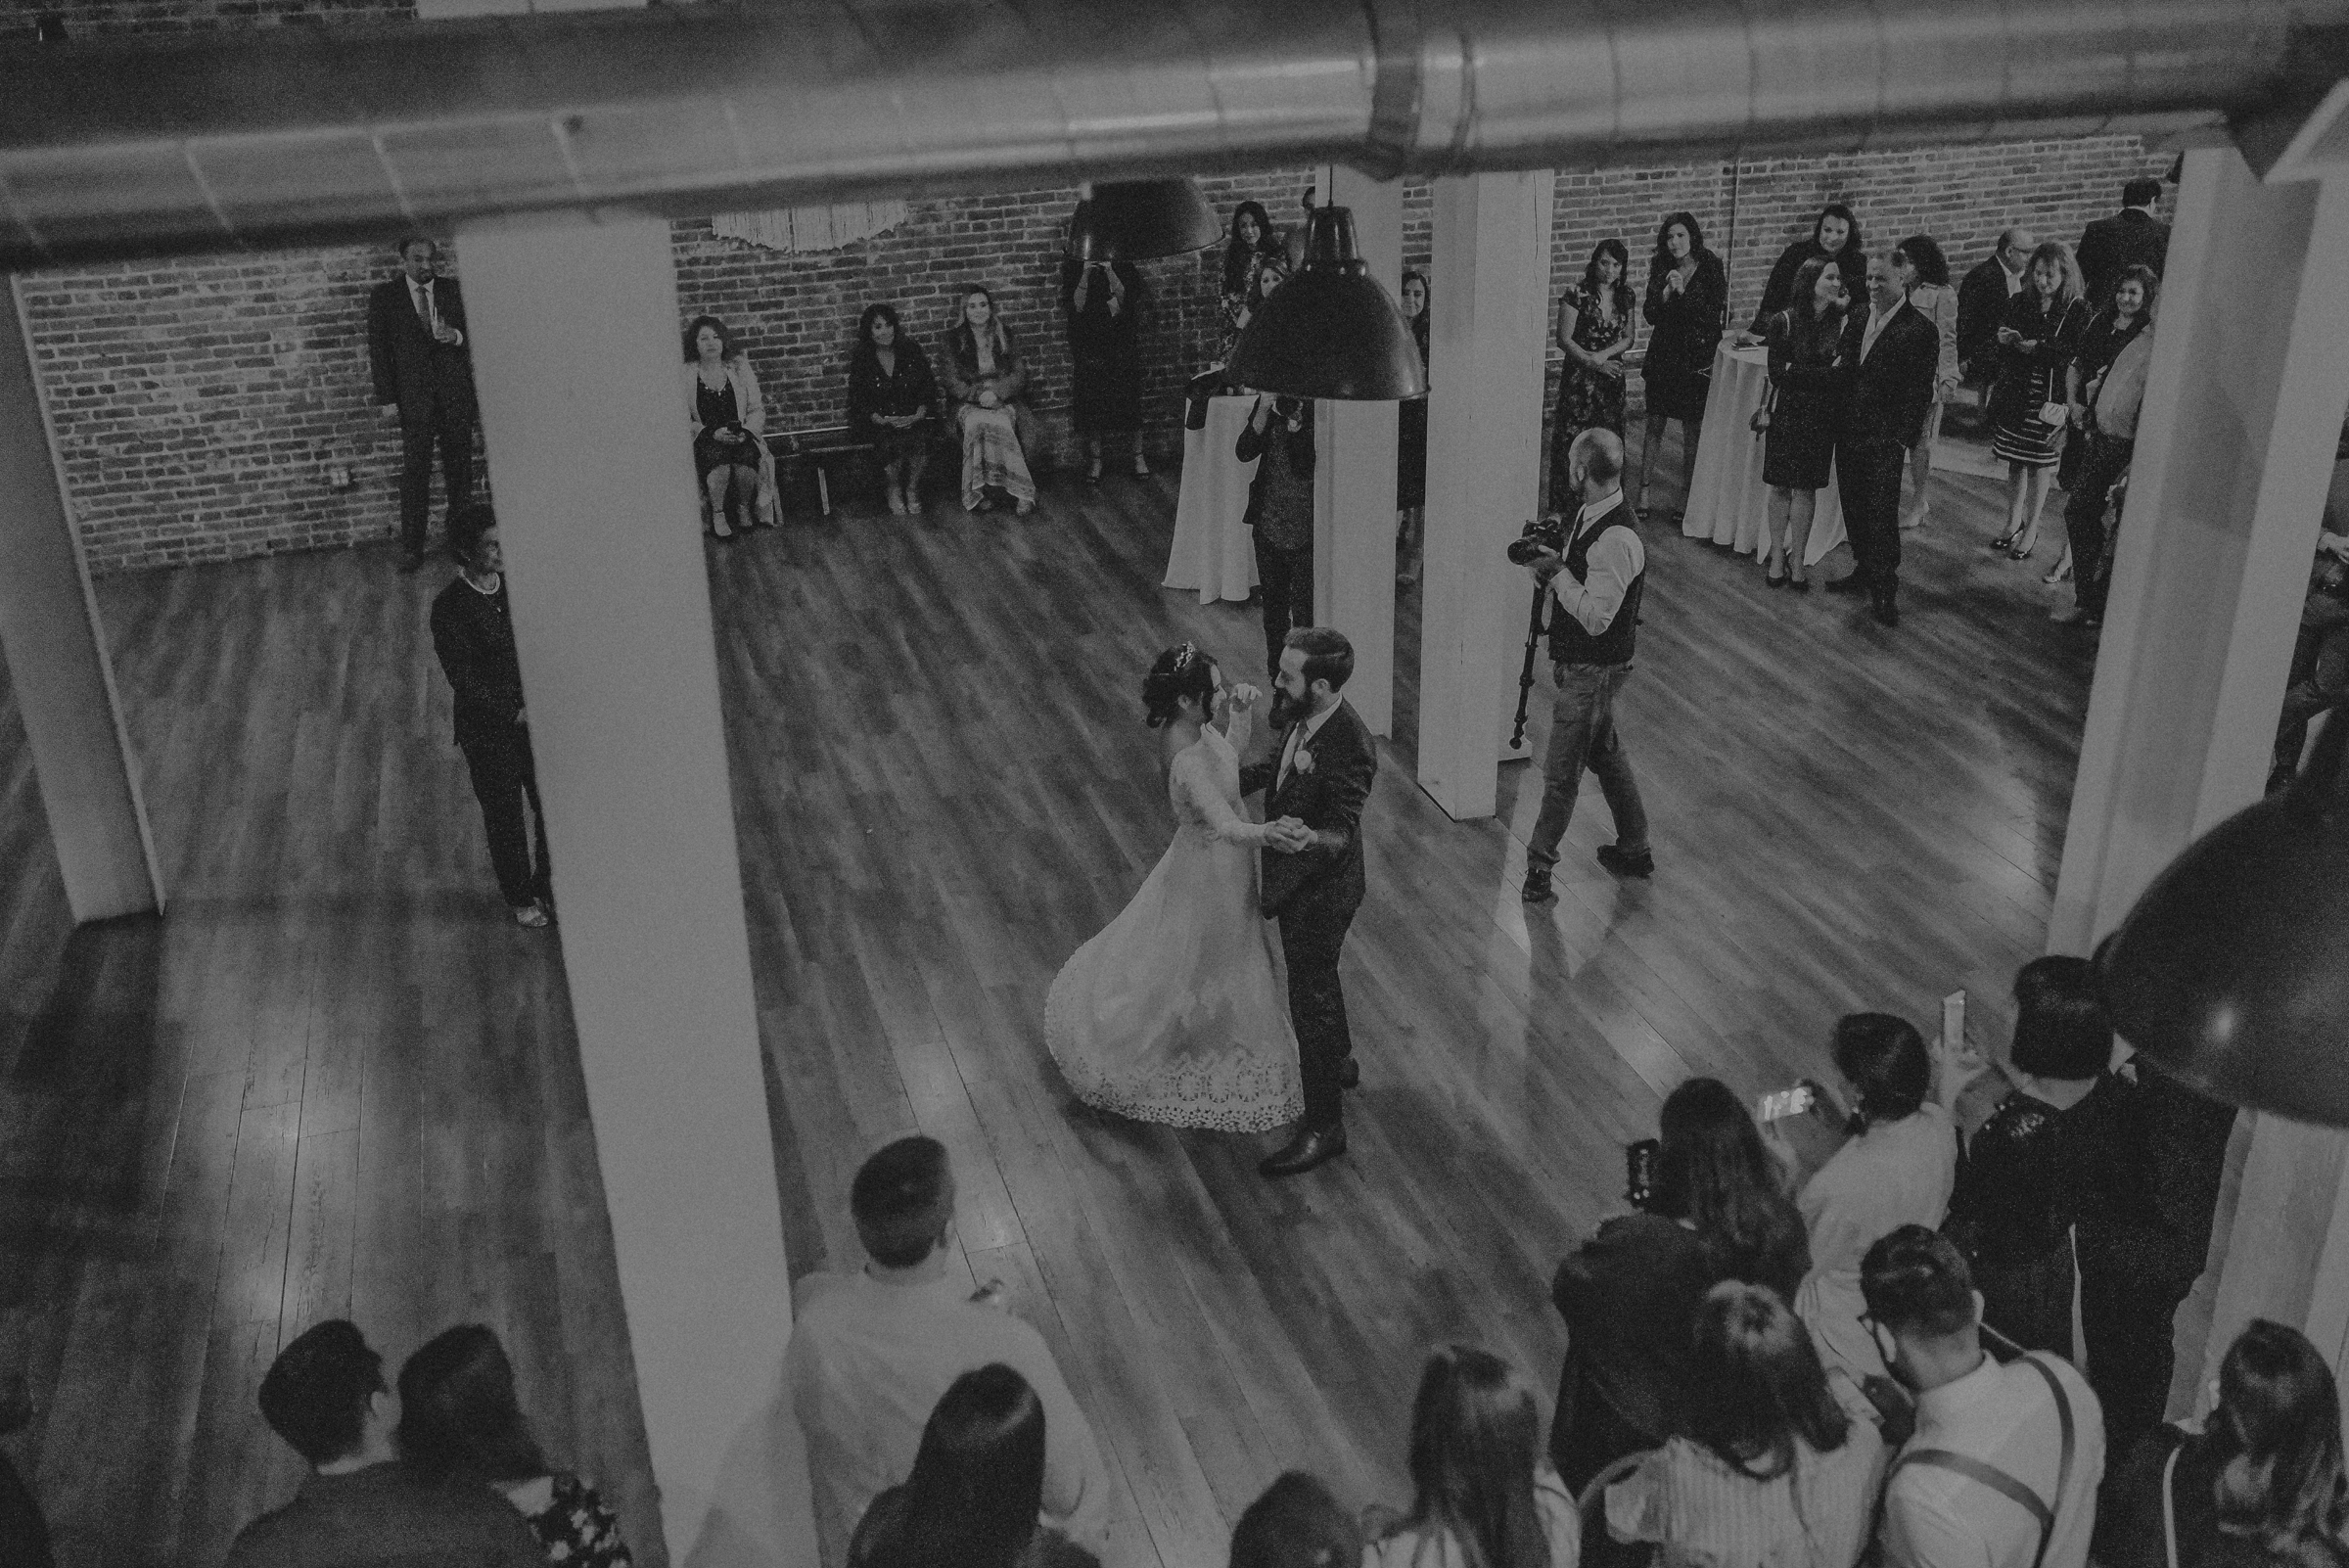 Isaiah + Taylor Photography - The Unique Space Wedding, Los Angeles Wedding Photography 154.jpg